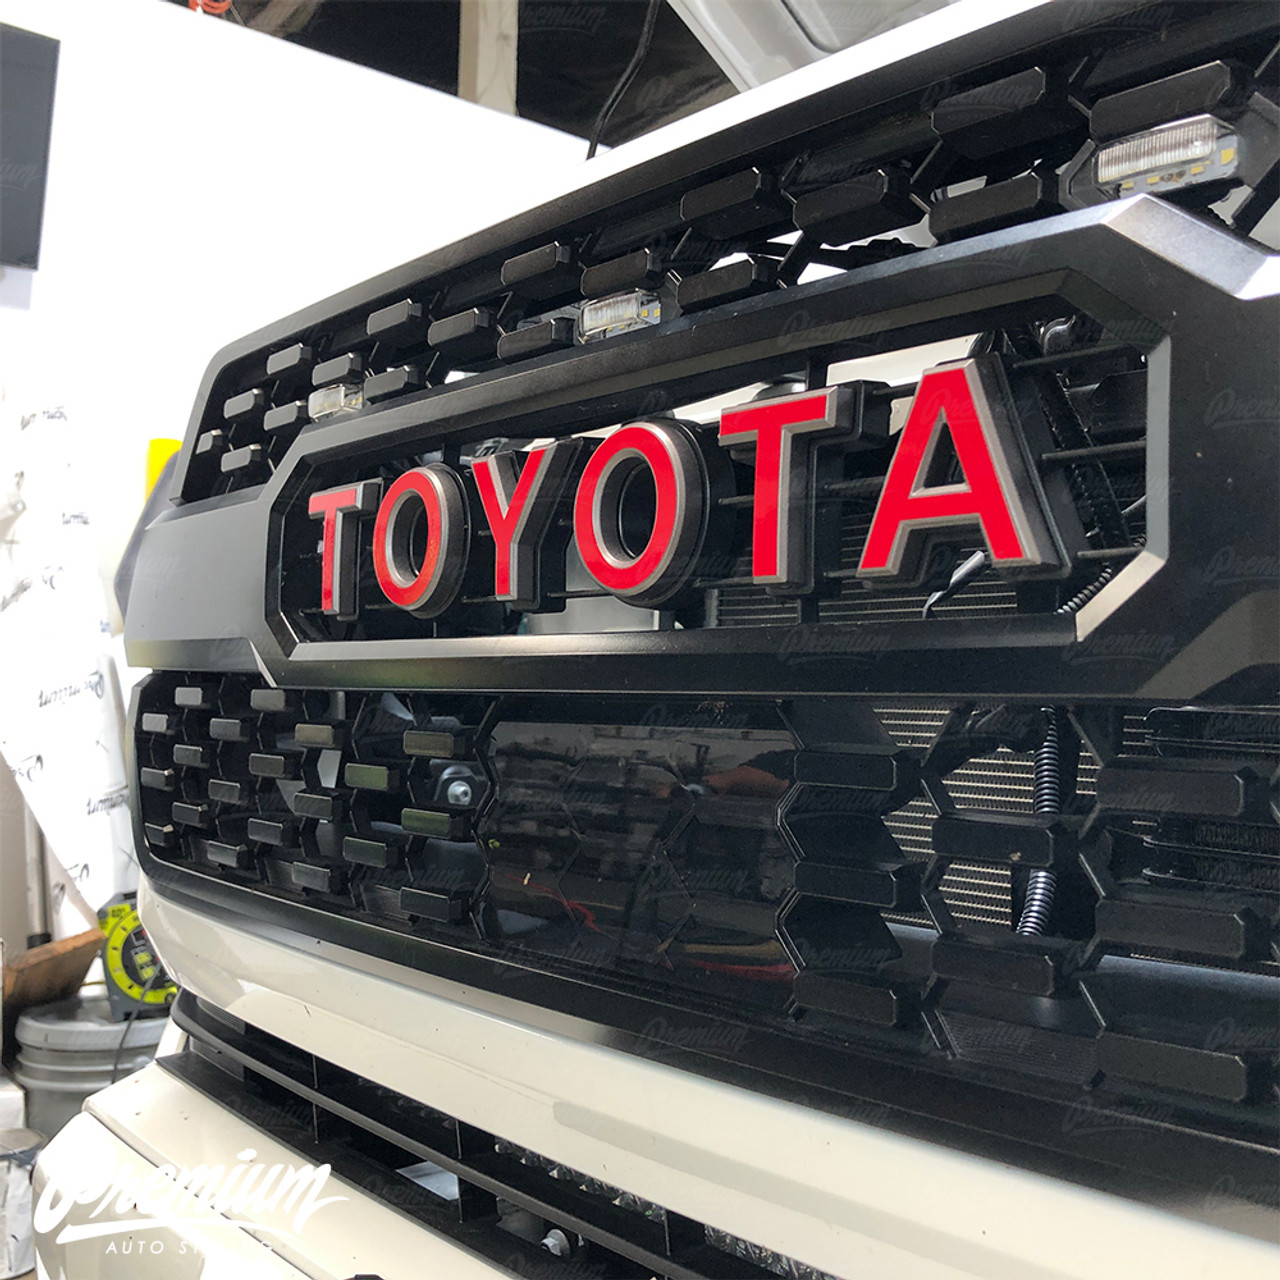 Tacoma TRD PRO Grille Matte Black Fit for TOYOTA Tacoma 2016 2017 2018